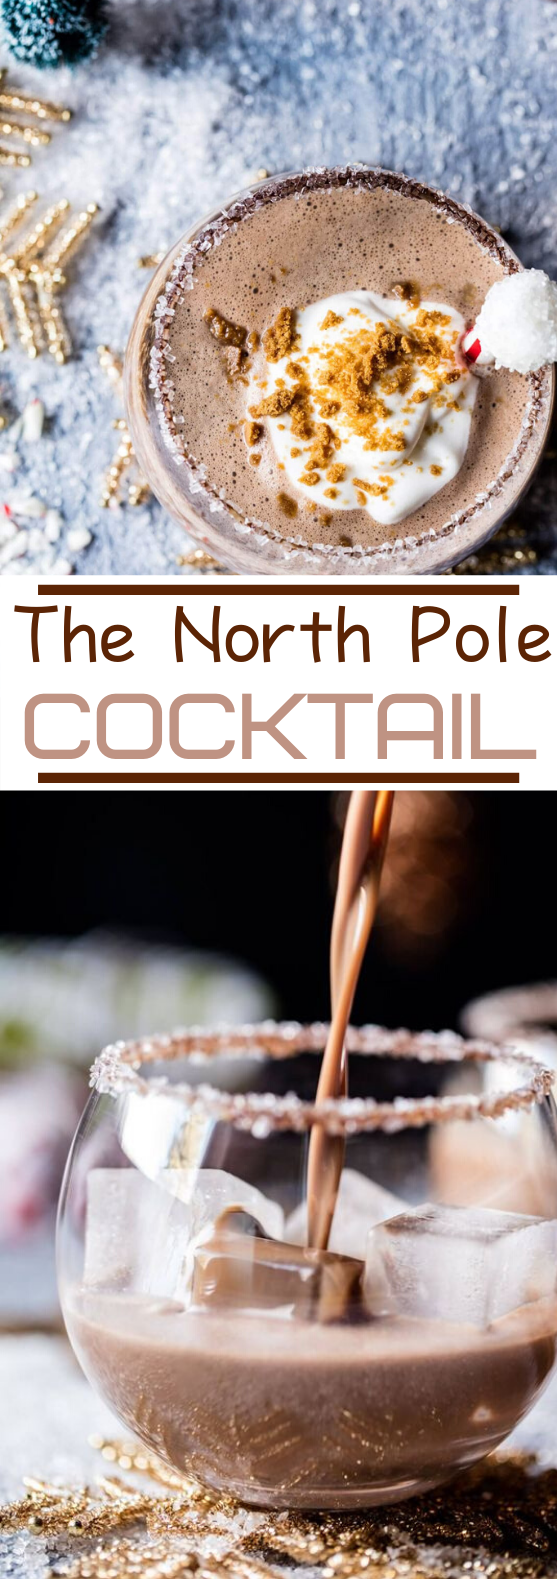 The North Pole Cocktail #drinks #cocktails #alcohol #christmas #winter